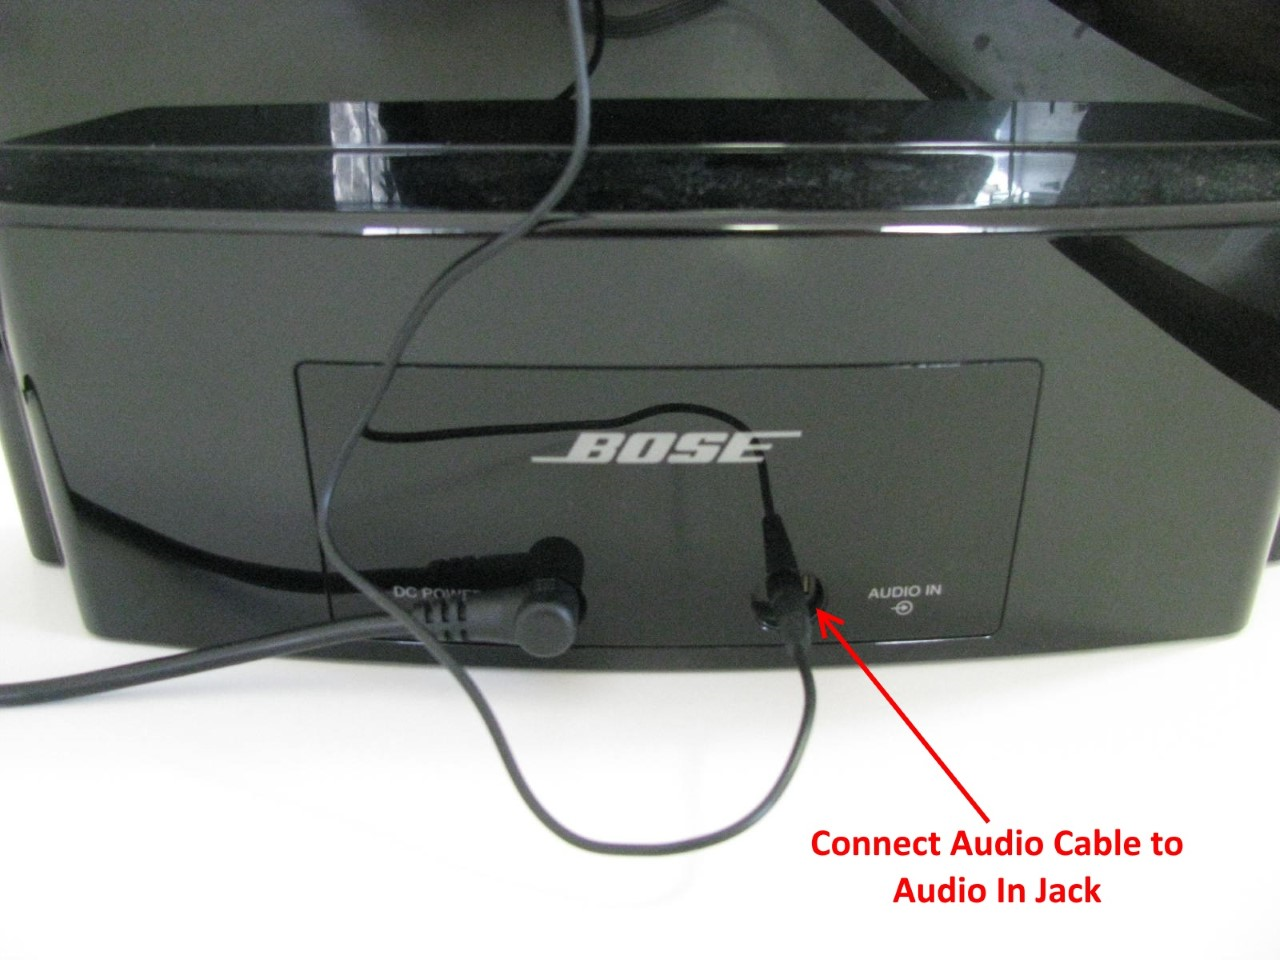 Will CoolStream Duo work with Bose SoundDock III? - CoolStream